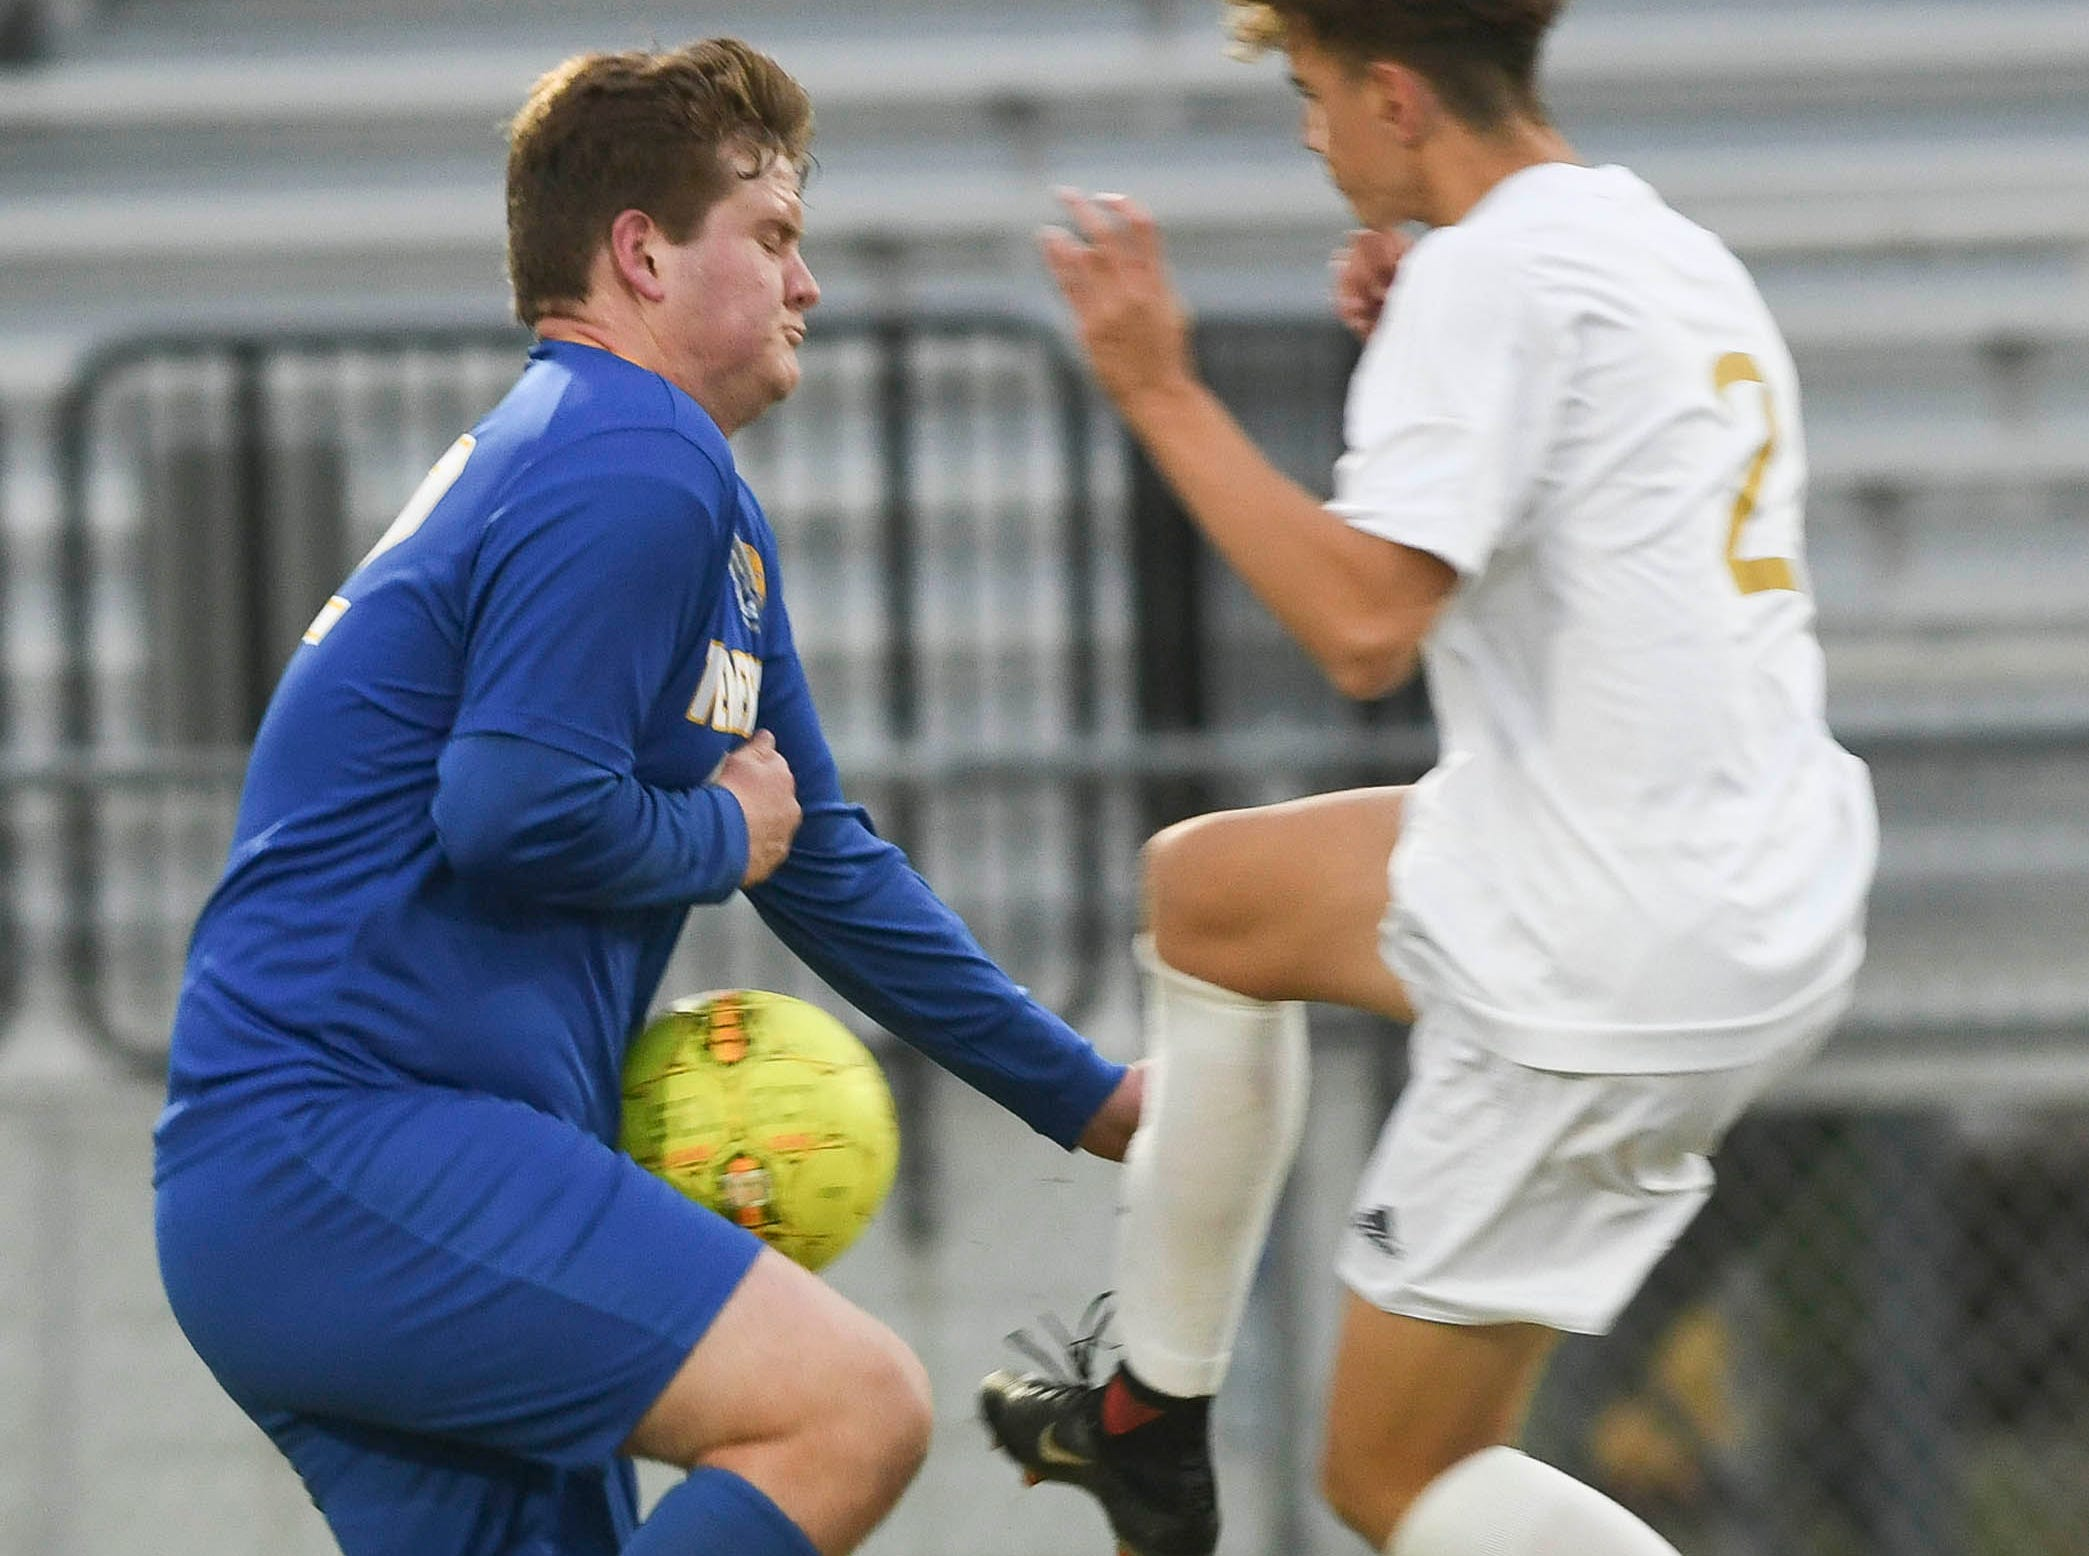 Titusville's Preston Mauzy blocks the way of Eau Gallie's Alex Masedo during Wednesday's District 12, Class 3A semifinal at McLarty Stadium